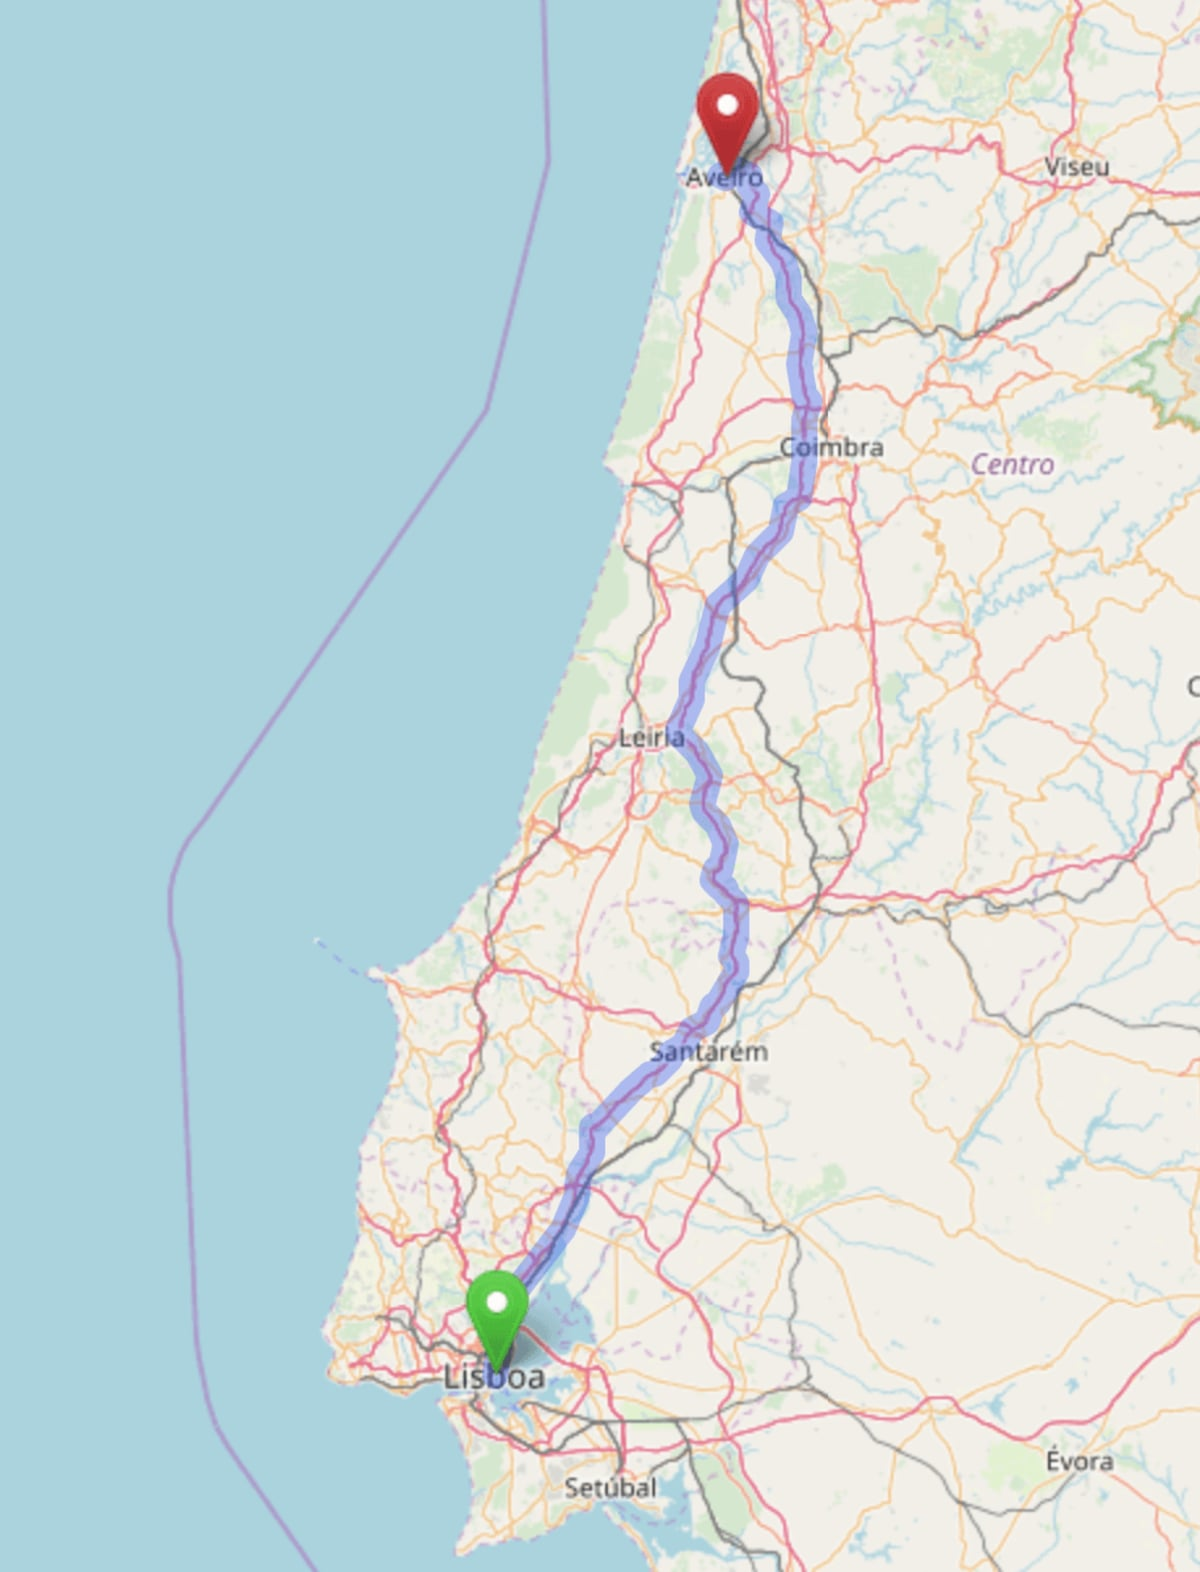 Map of the road route from Lisbon to Aveiro